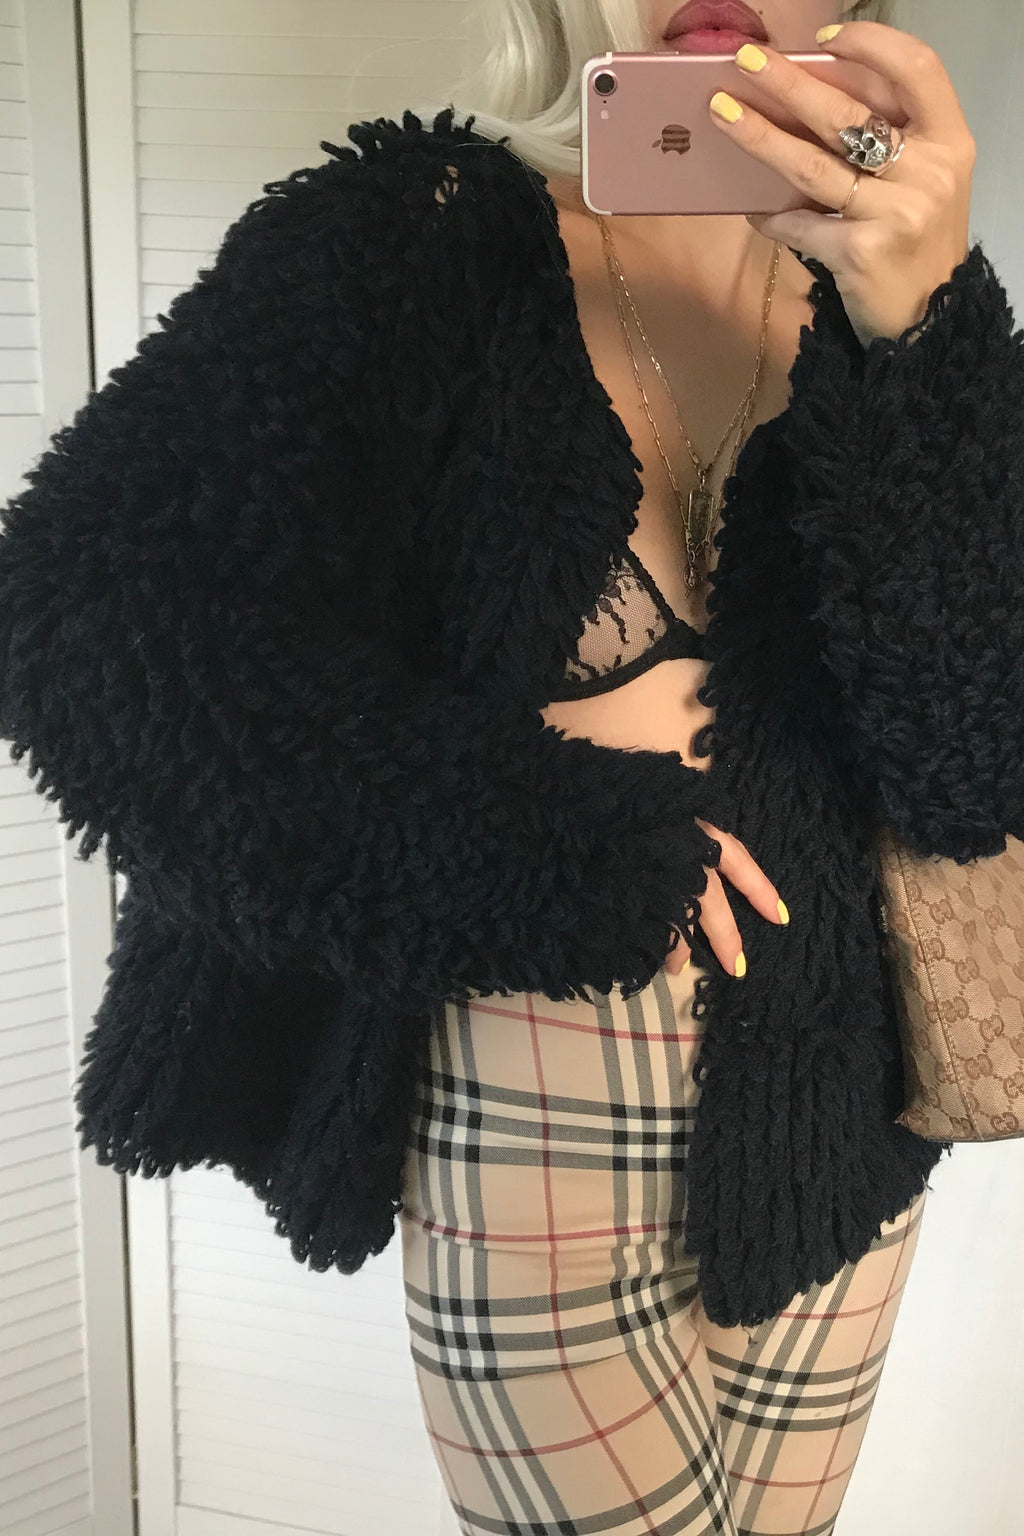 Vintage 1970s Black Shaggy Loop Knit Cardigan